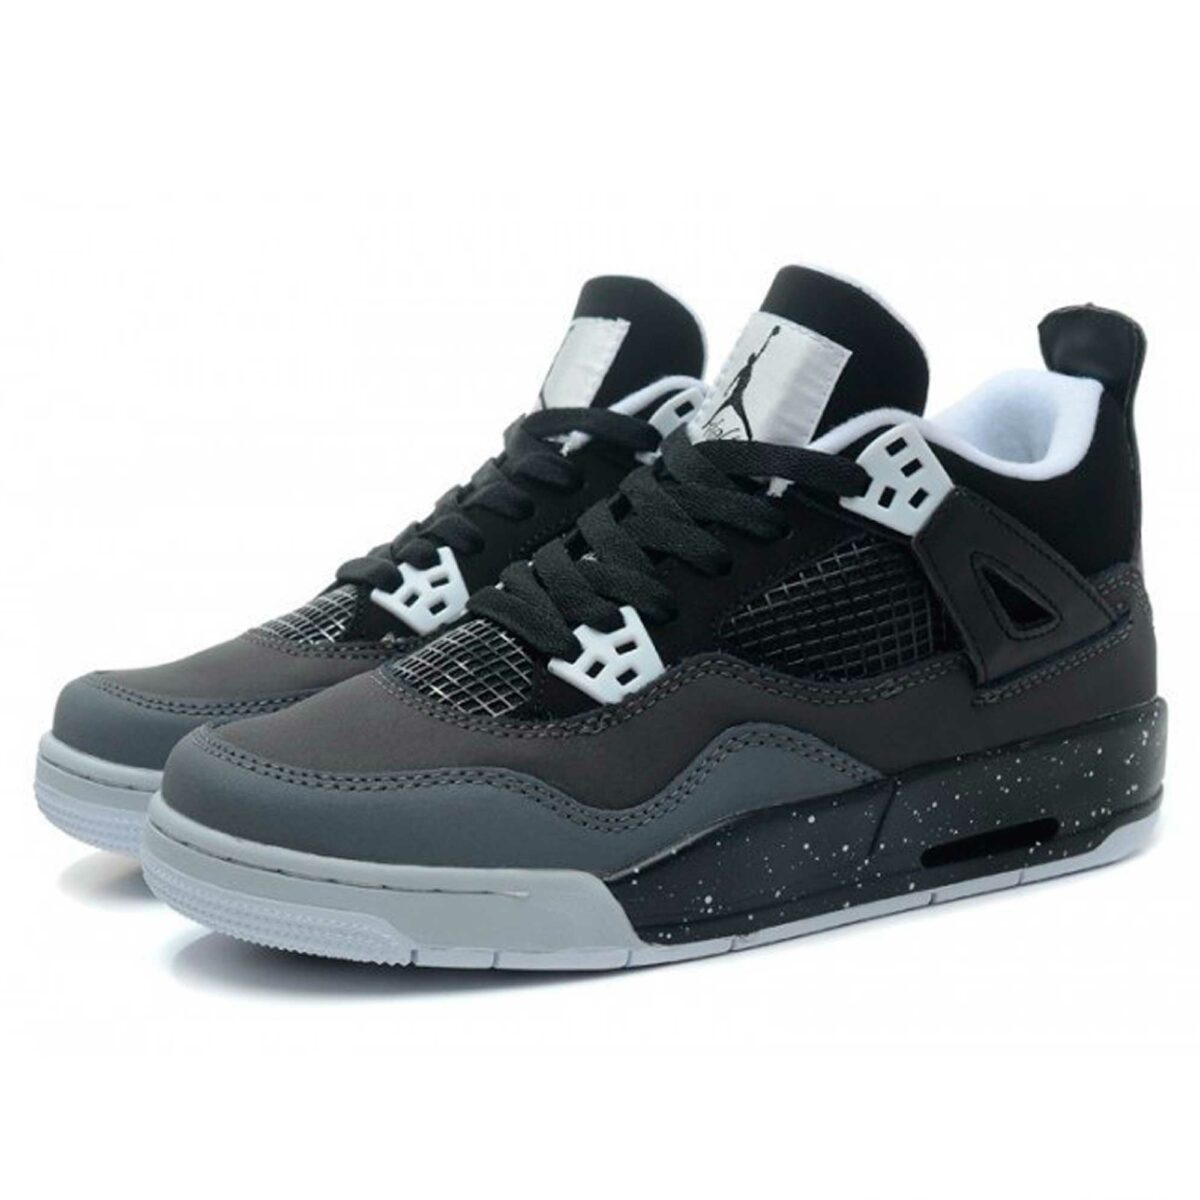 nike air jordan 4 retro fear pack 626969-030 купить